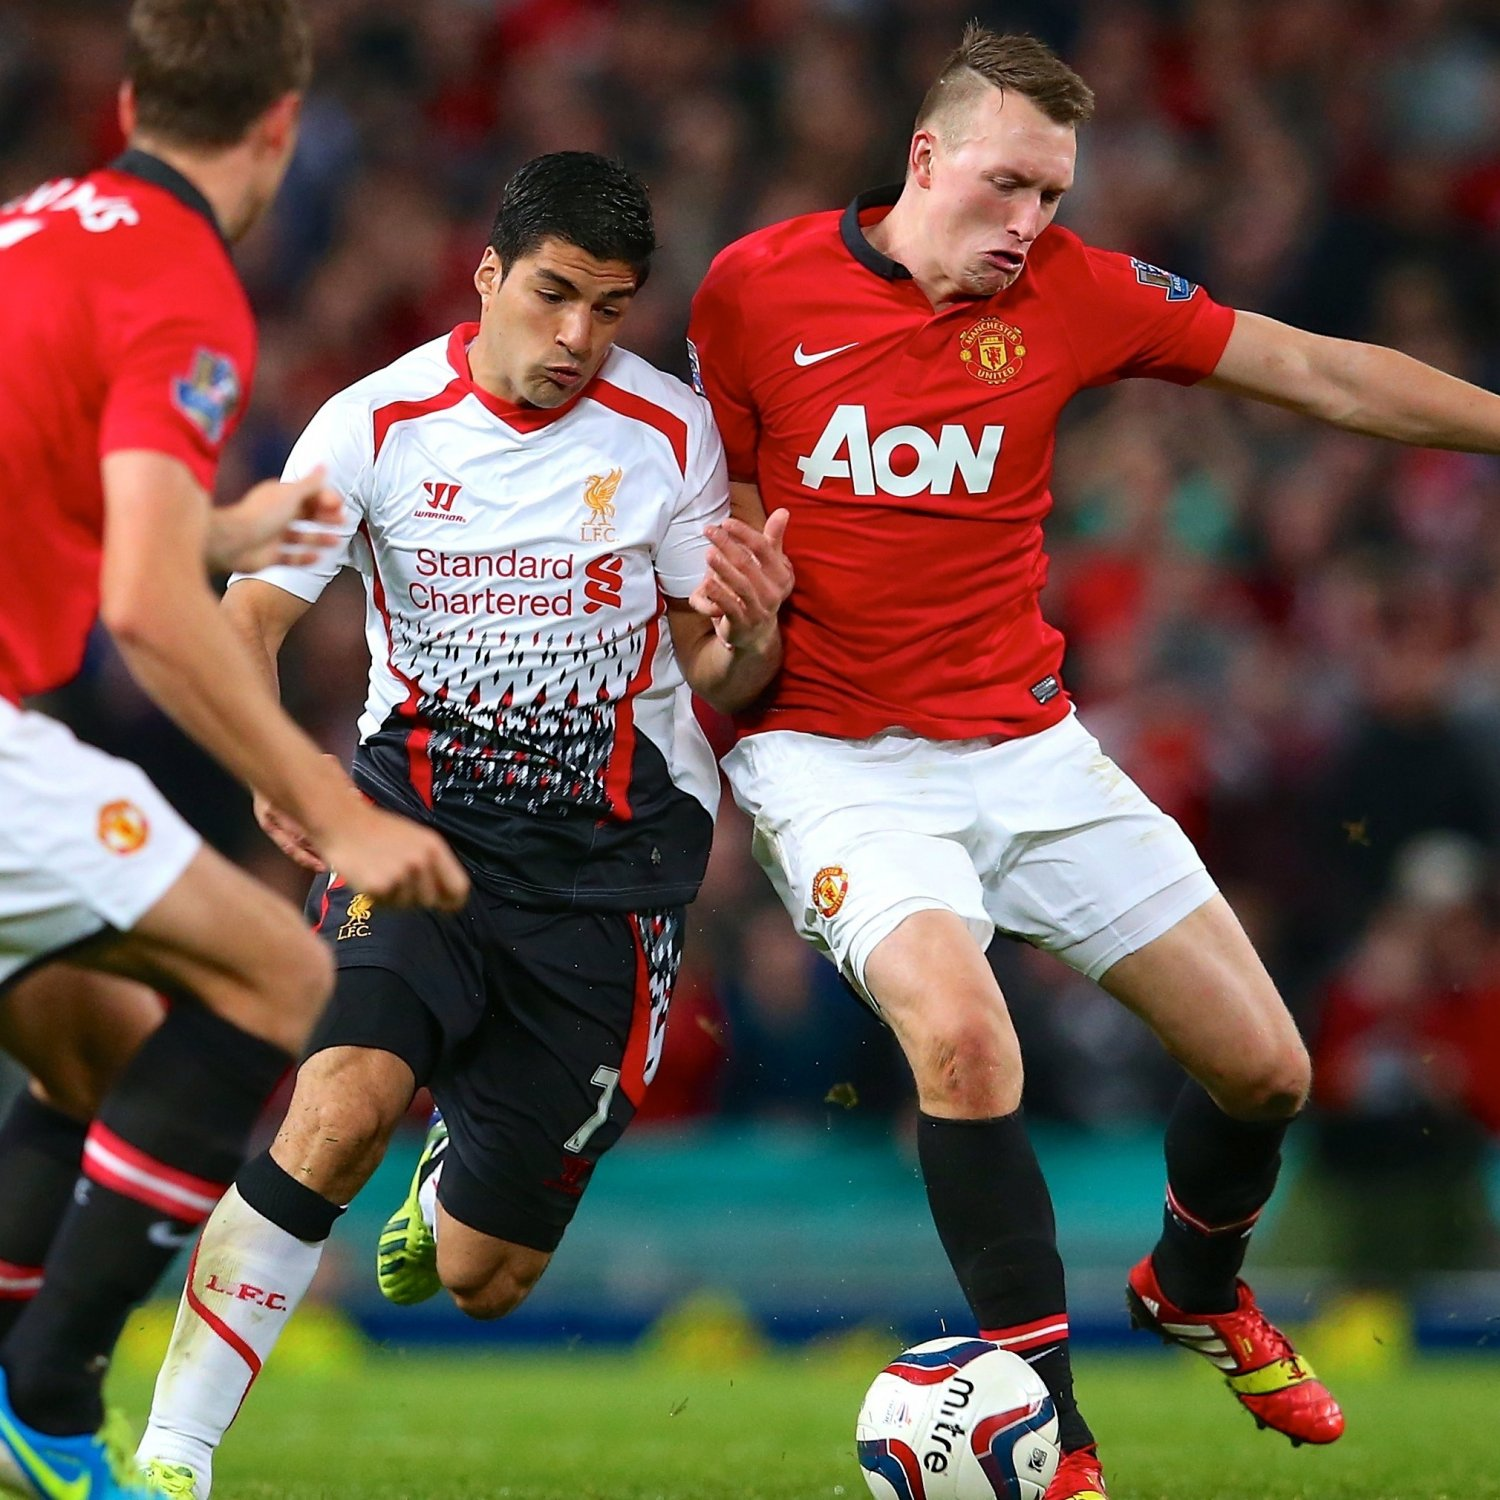 Liverpool Vs Man Utd U19s Result: Manchester United Vs. Liverpool: Capital One Cup Live